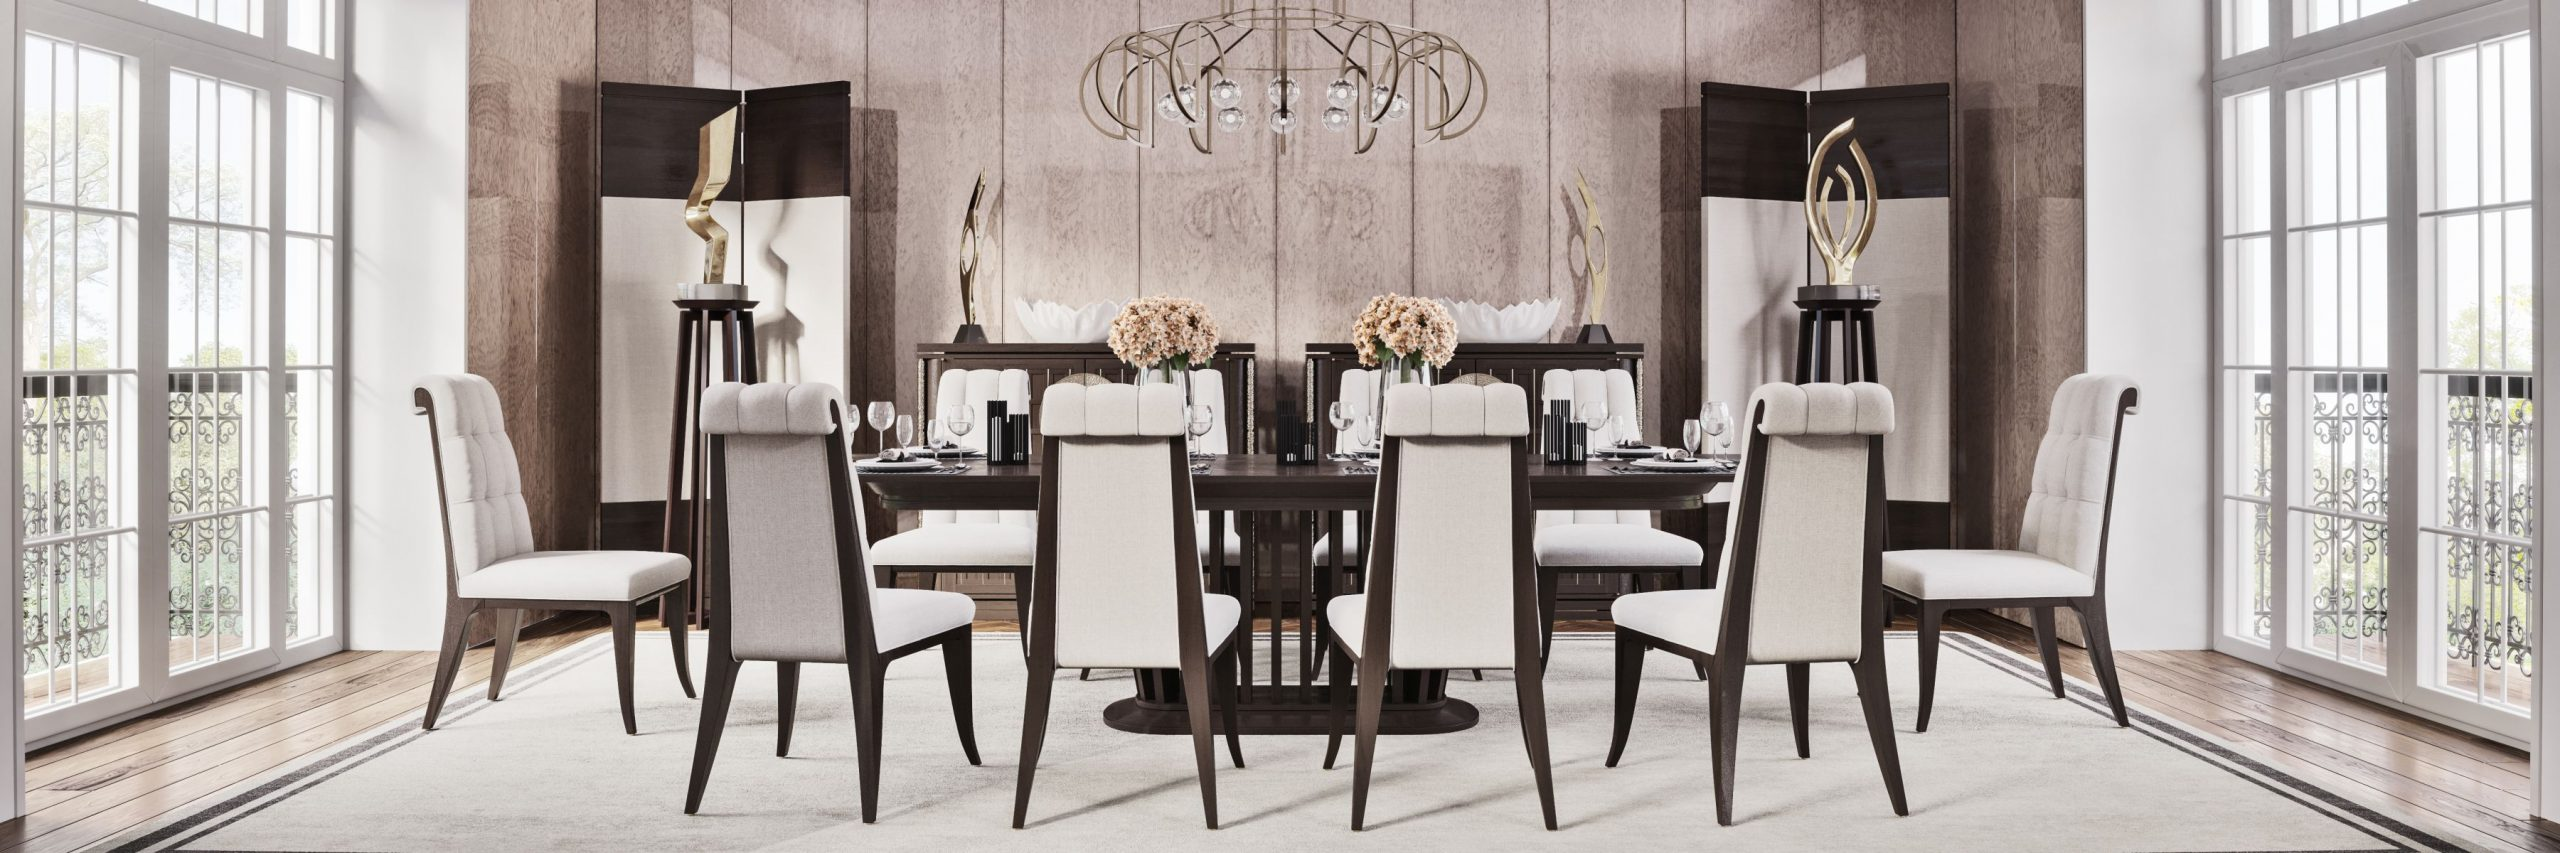 Shepel - Mobilier - Dining - William